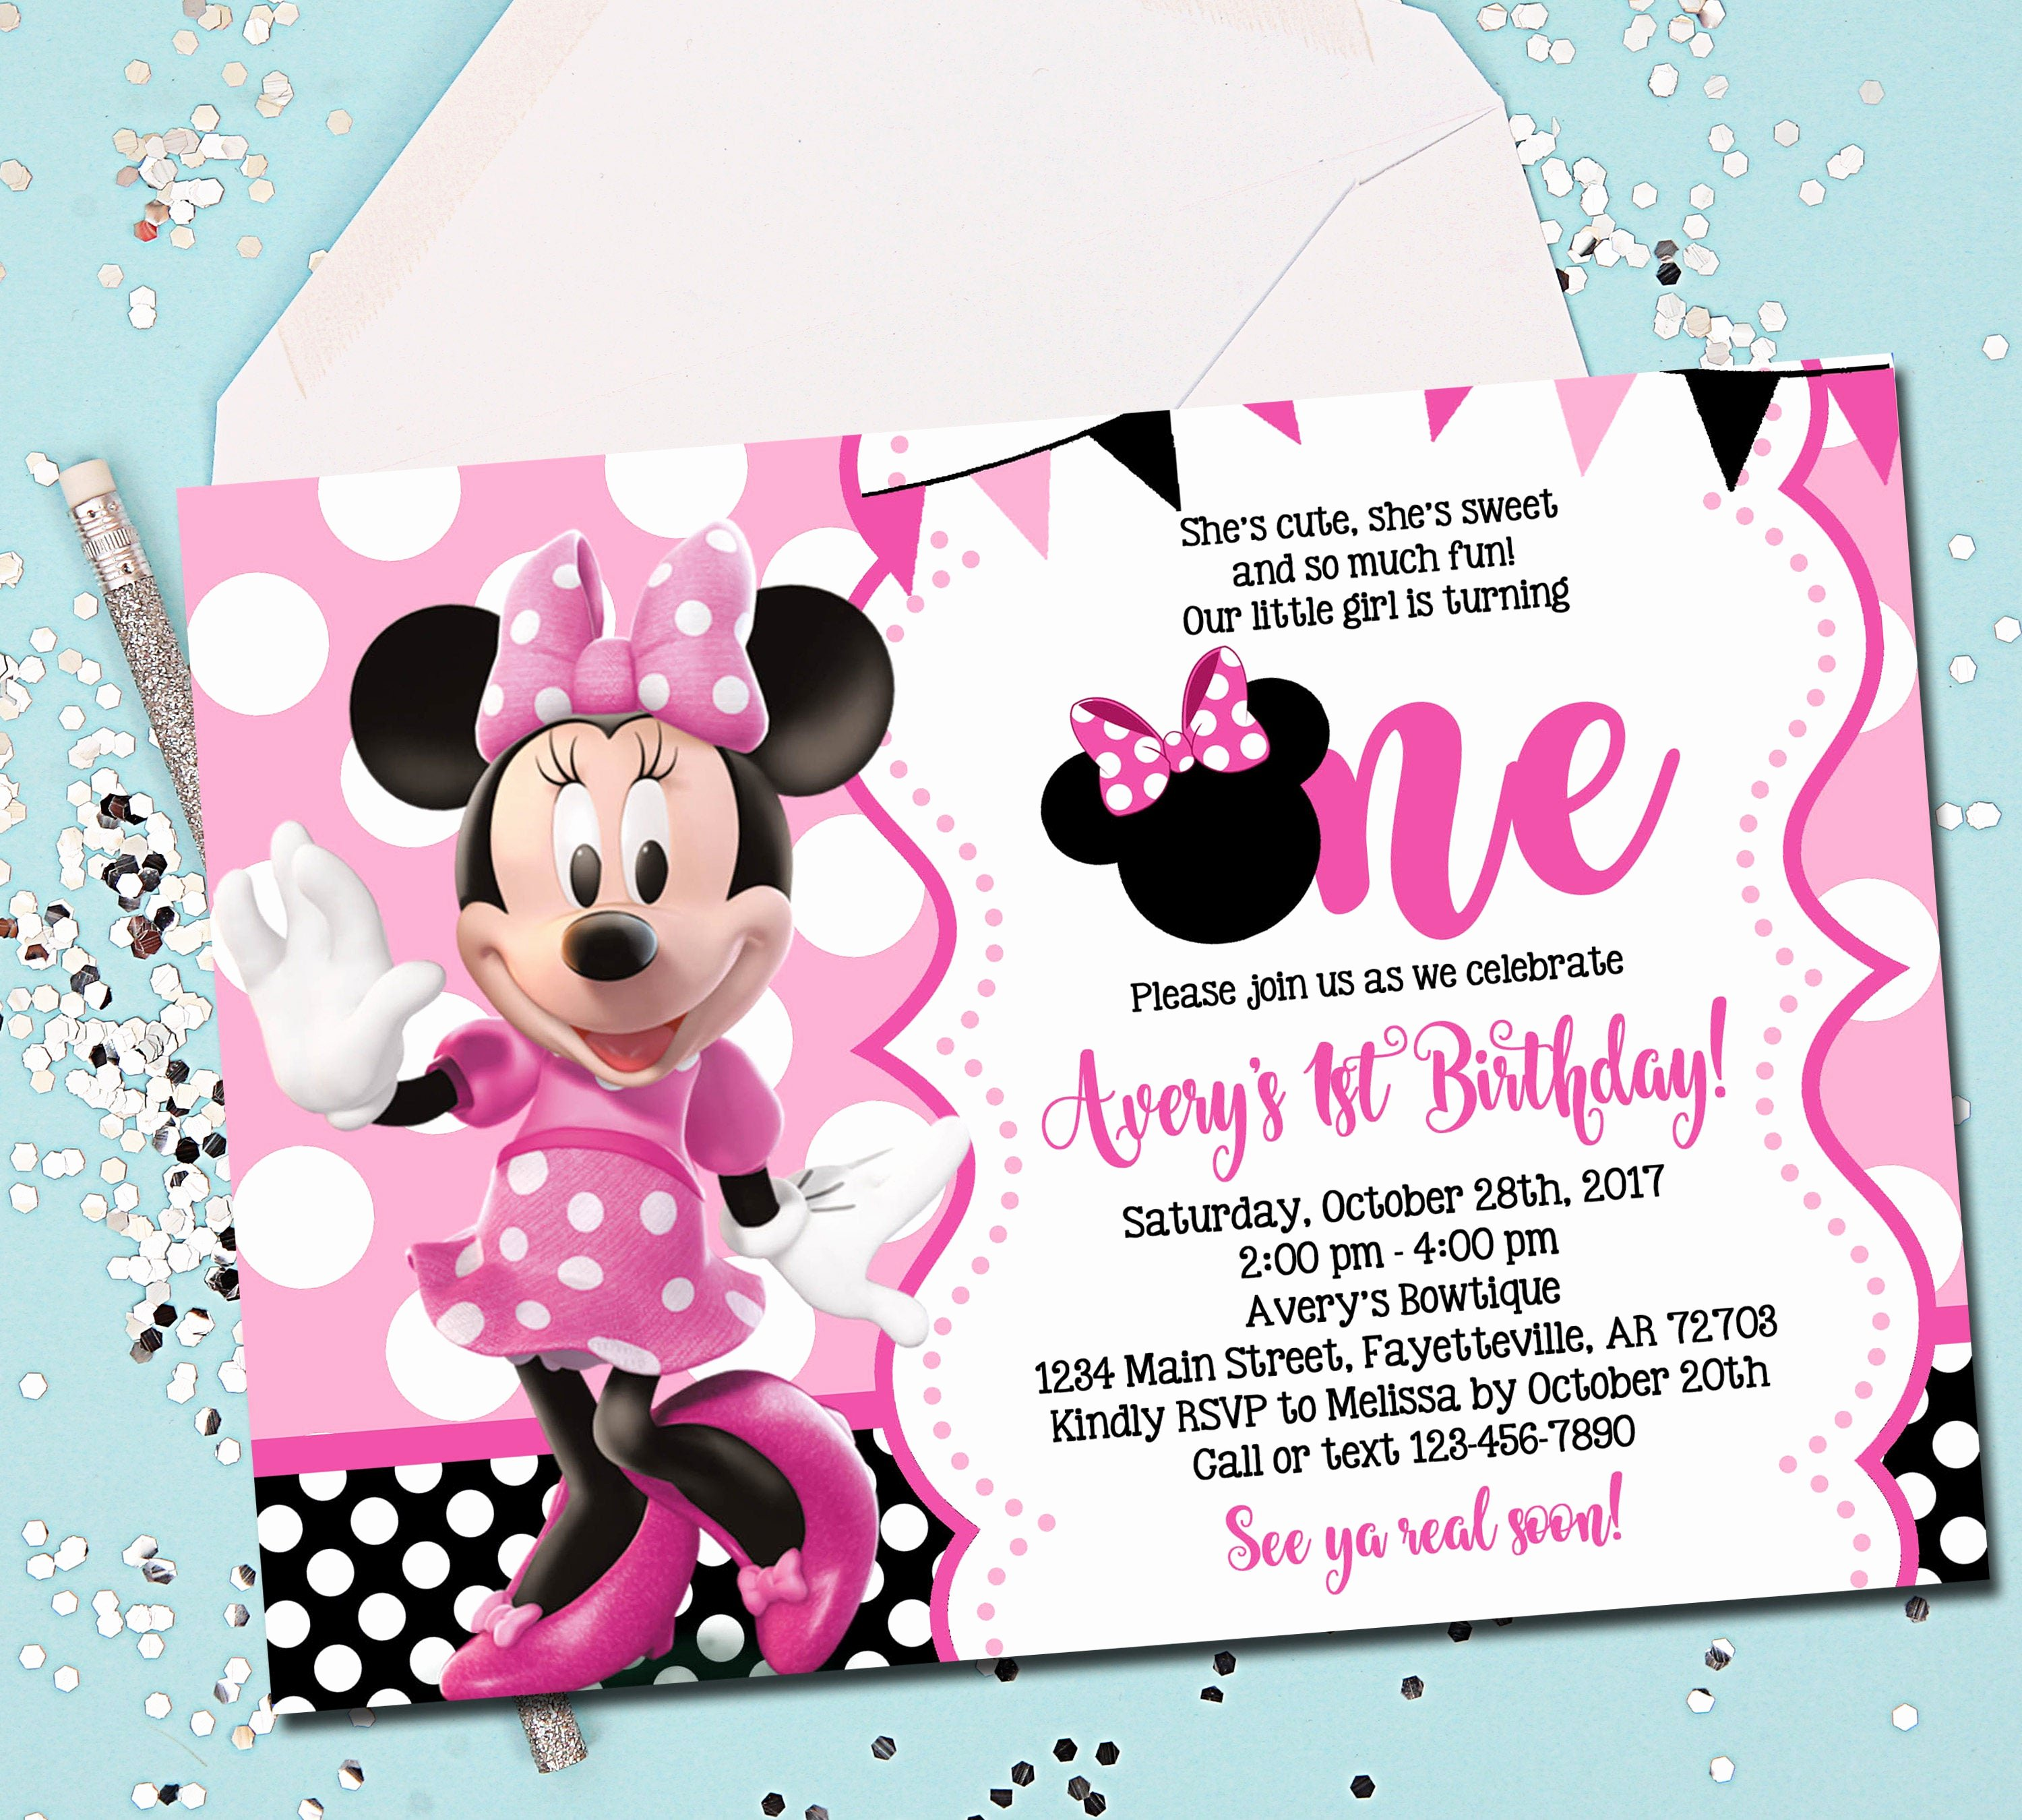 Minnie Mouse 1st Birthday Invitation Fresh Minnie Mouse Invitation Minnie Mouse Birthday Invitation